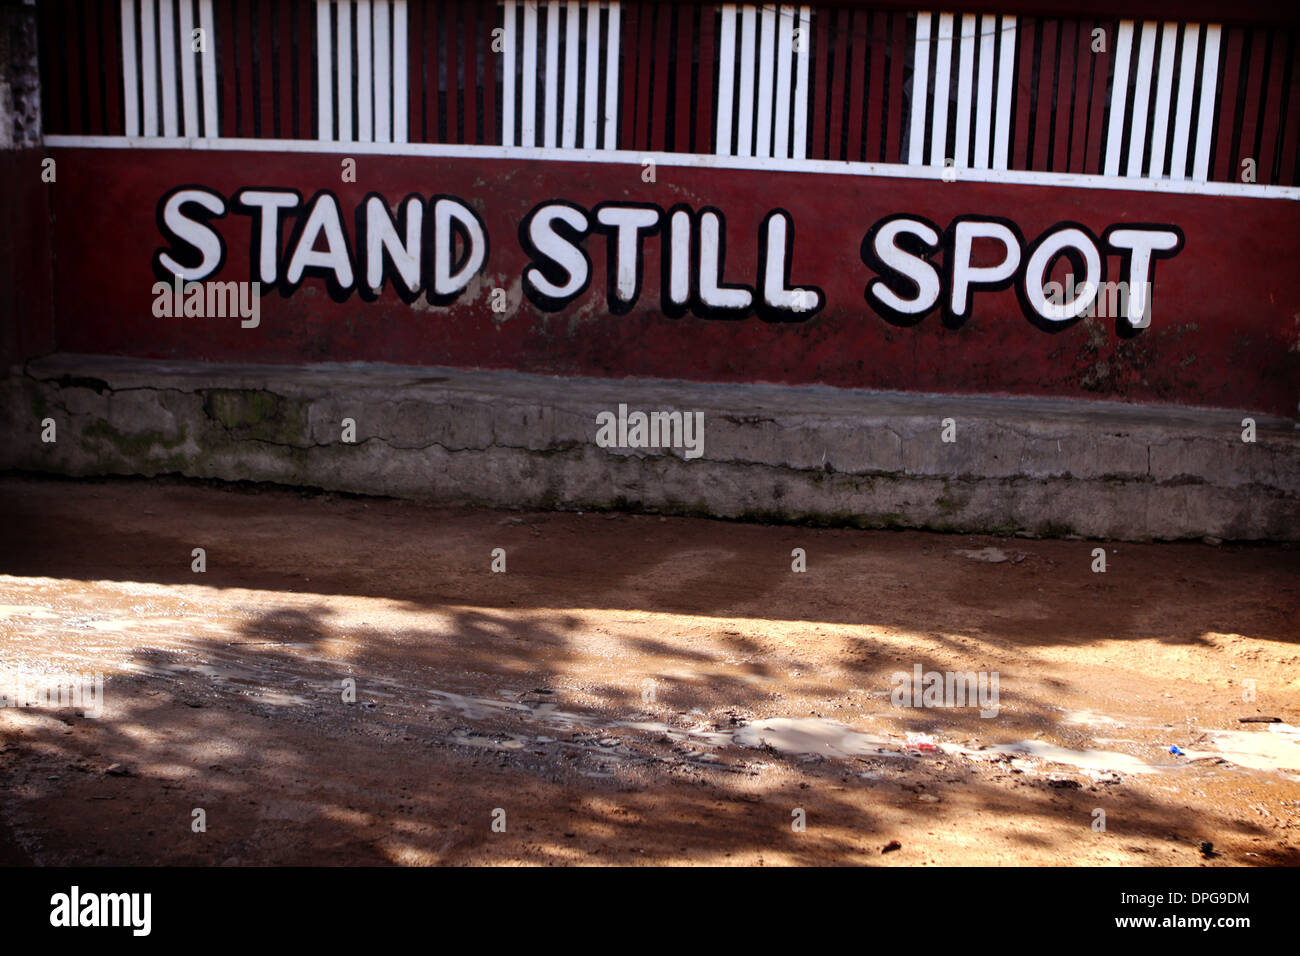 Humorous sign on wall in Ghana - Stock Image